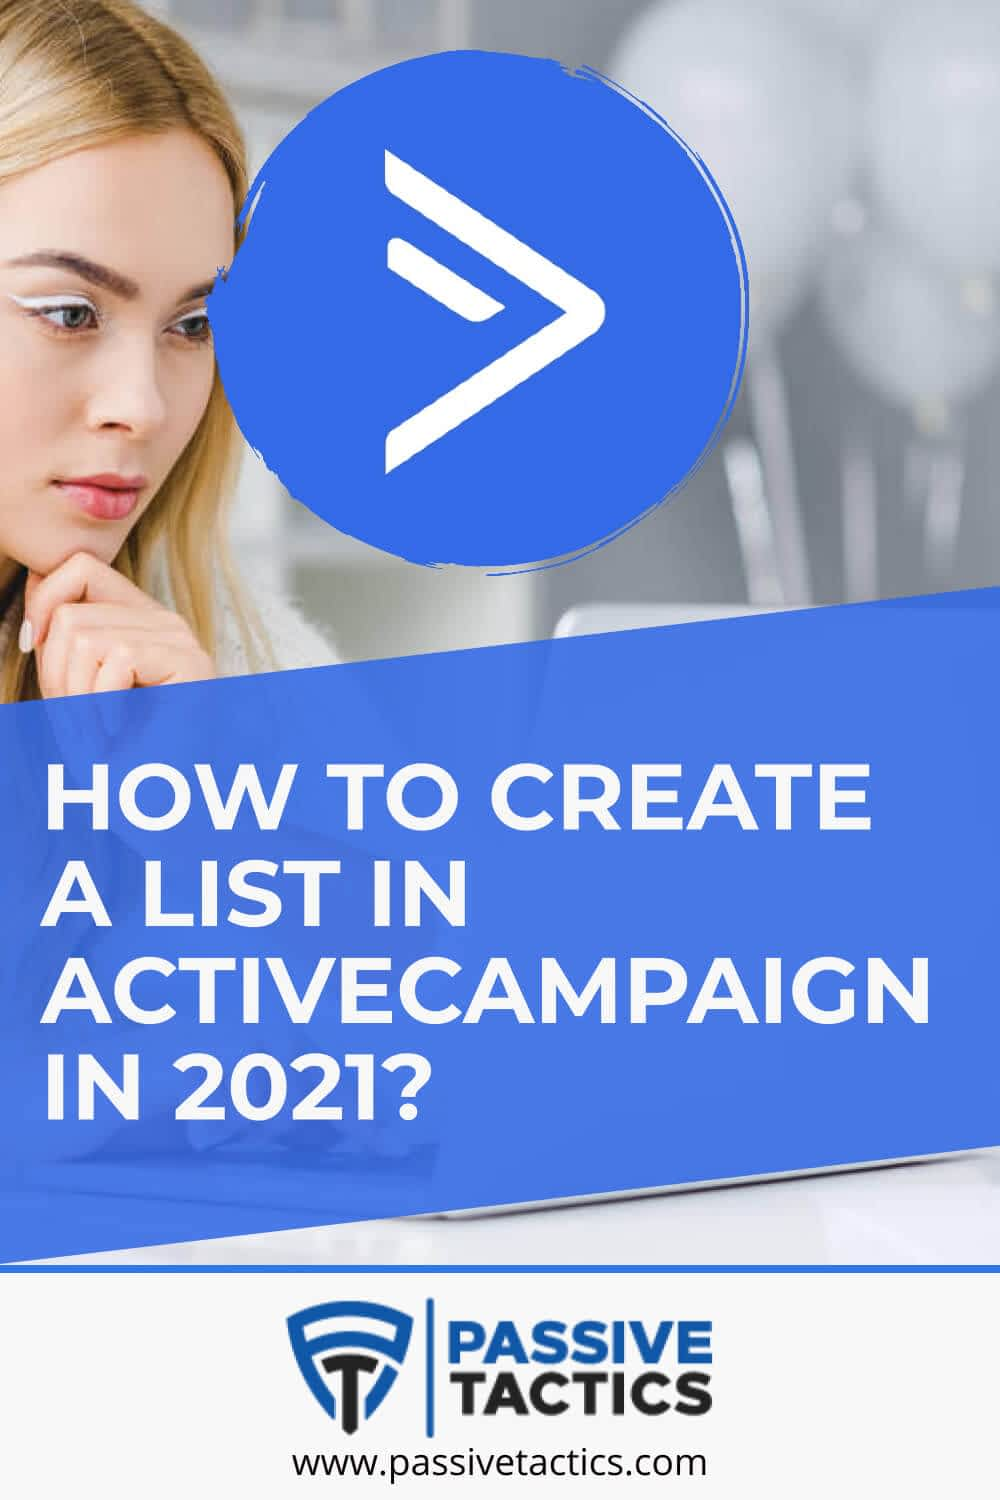 How To Create A List In ActiveCampaign In 2021?